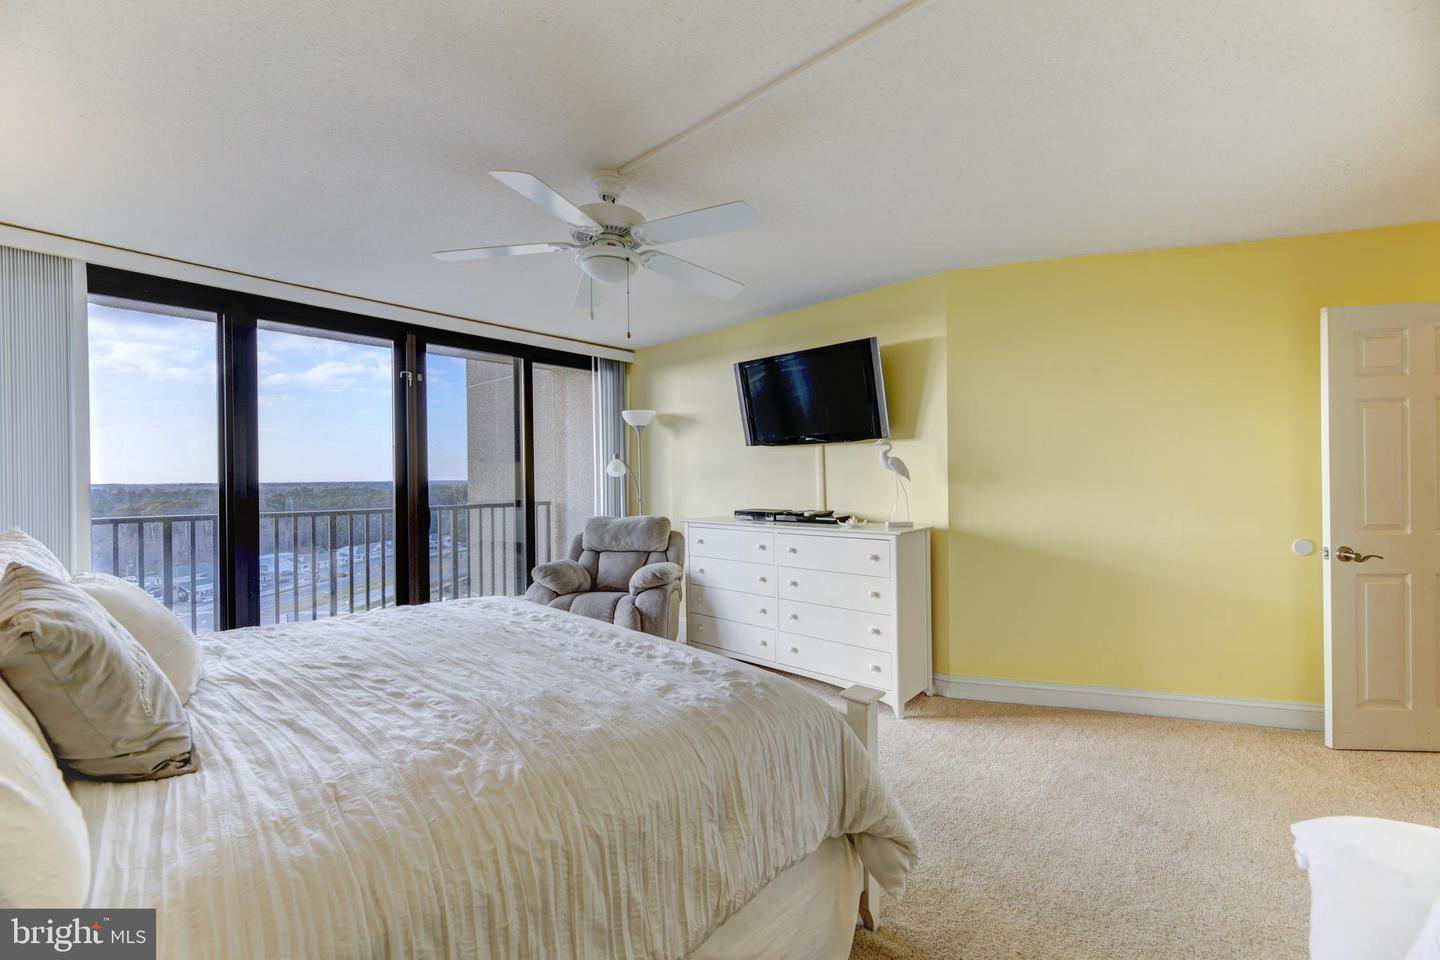 DESU152792-302186530666-2019-12-16-14-23-17 1206 S Edgewater House Rd #1206s | Bethany Beach, De Real Estate For Sale | MLS# Desu152792  - Suzanne Macnab